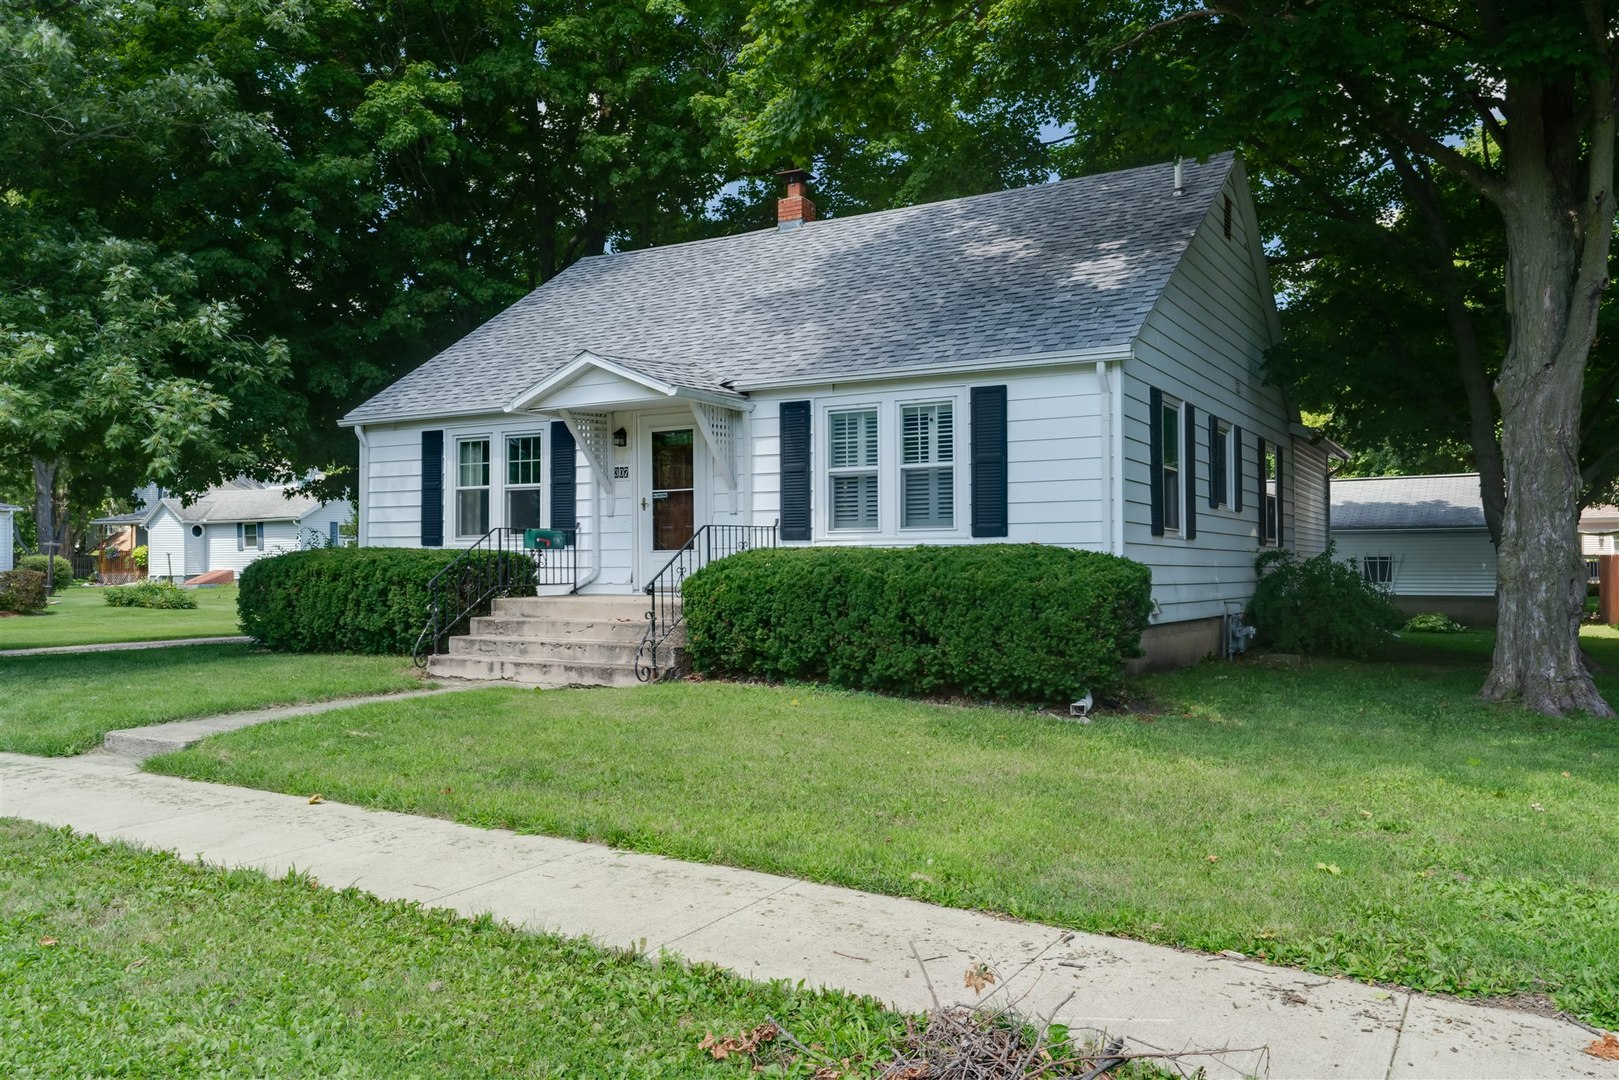 307 Walnut ,Lexington, Illinois 61753